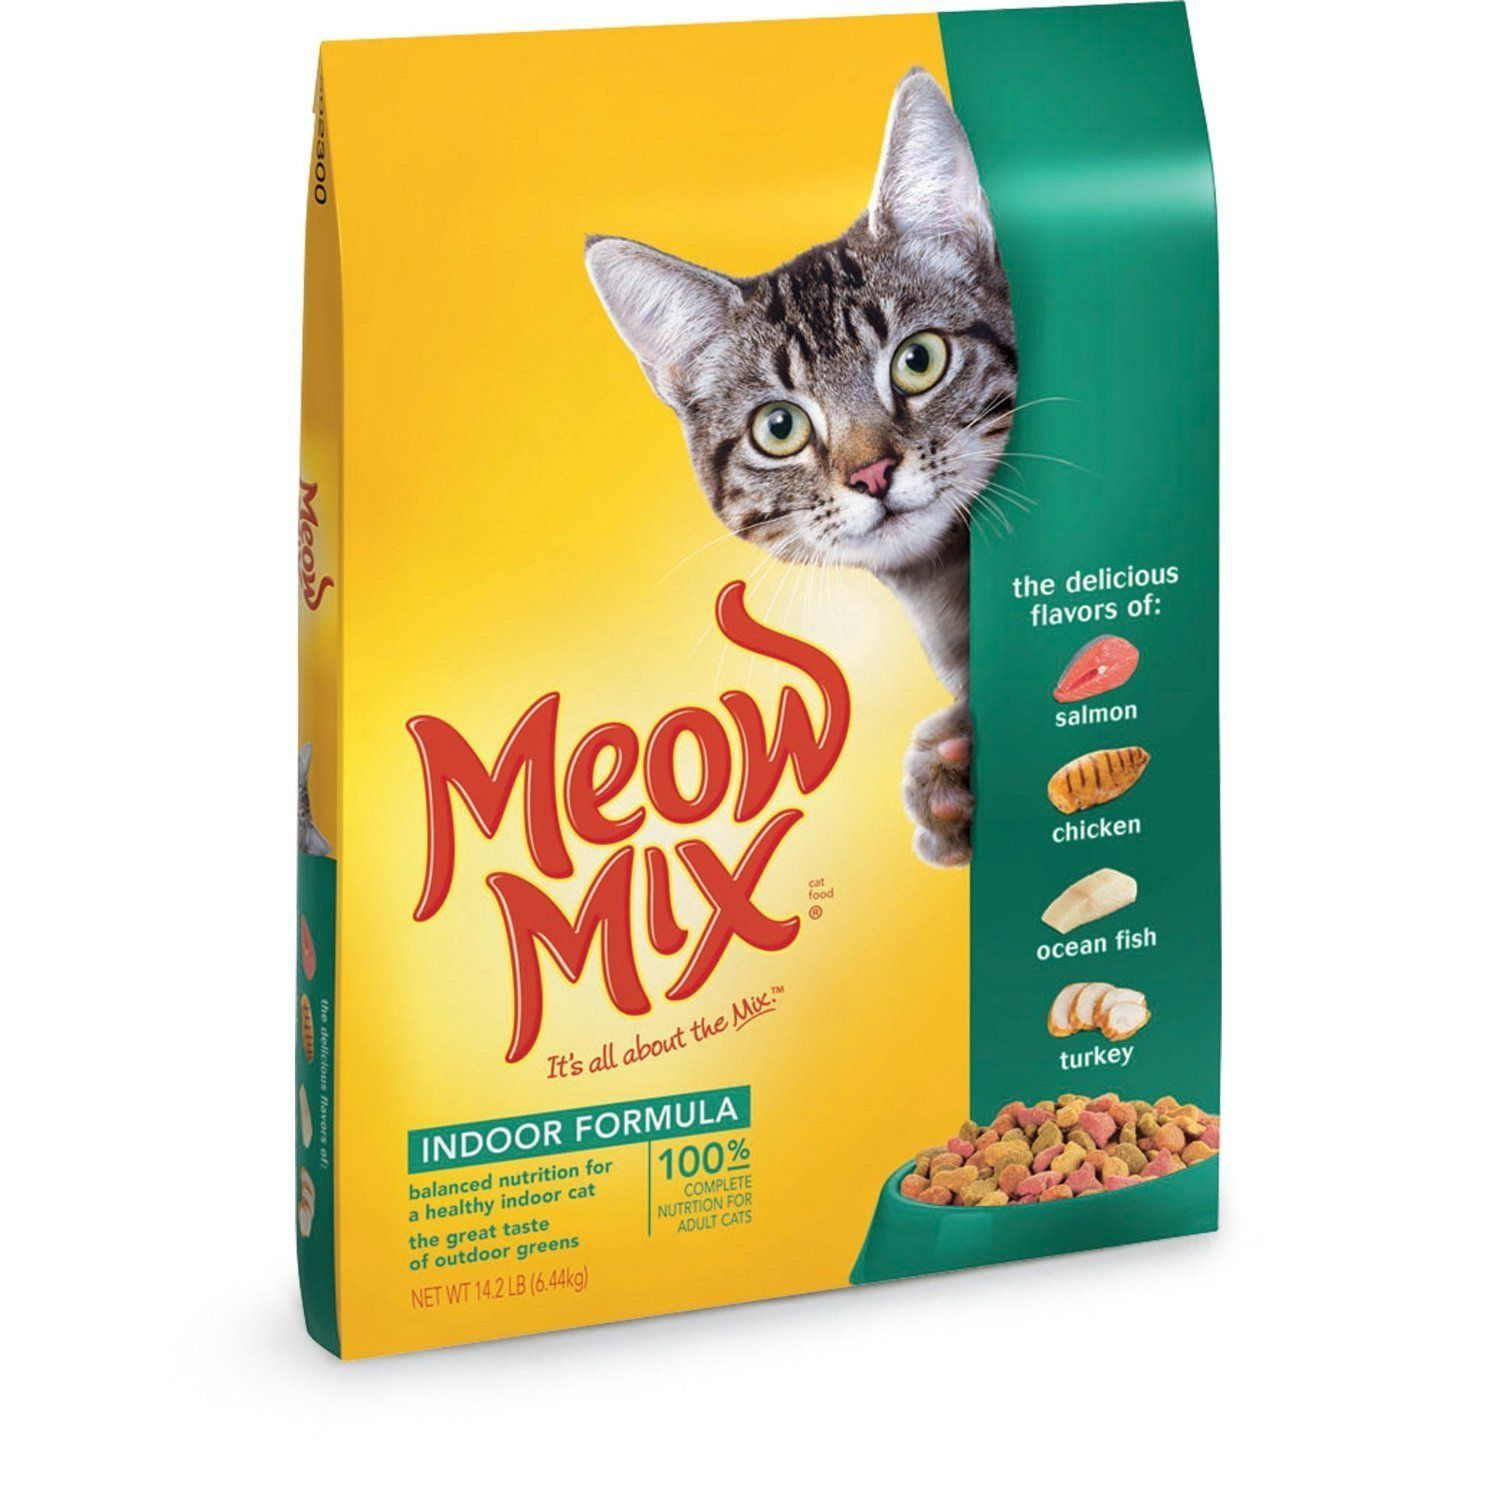 Meow Mix Indoor Formula Dry Cat FoodNew Value Pack Size